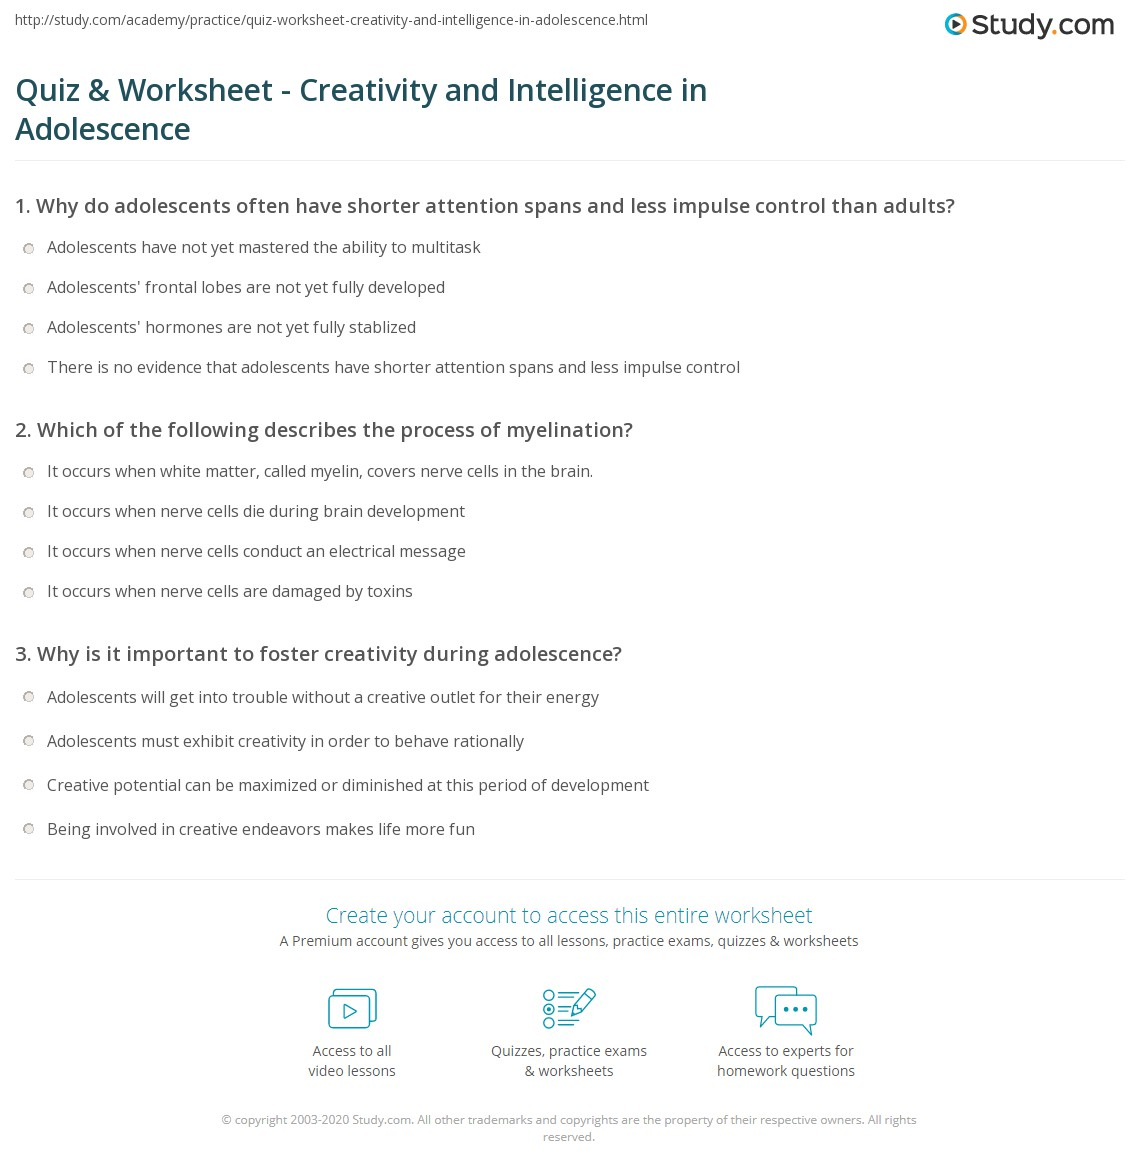 Quiz Worksheet Creativity And Intelligence In Adolescence